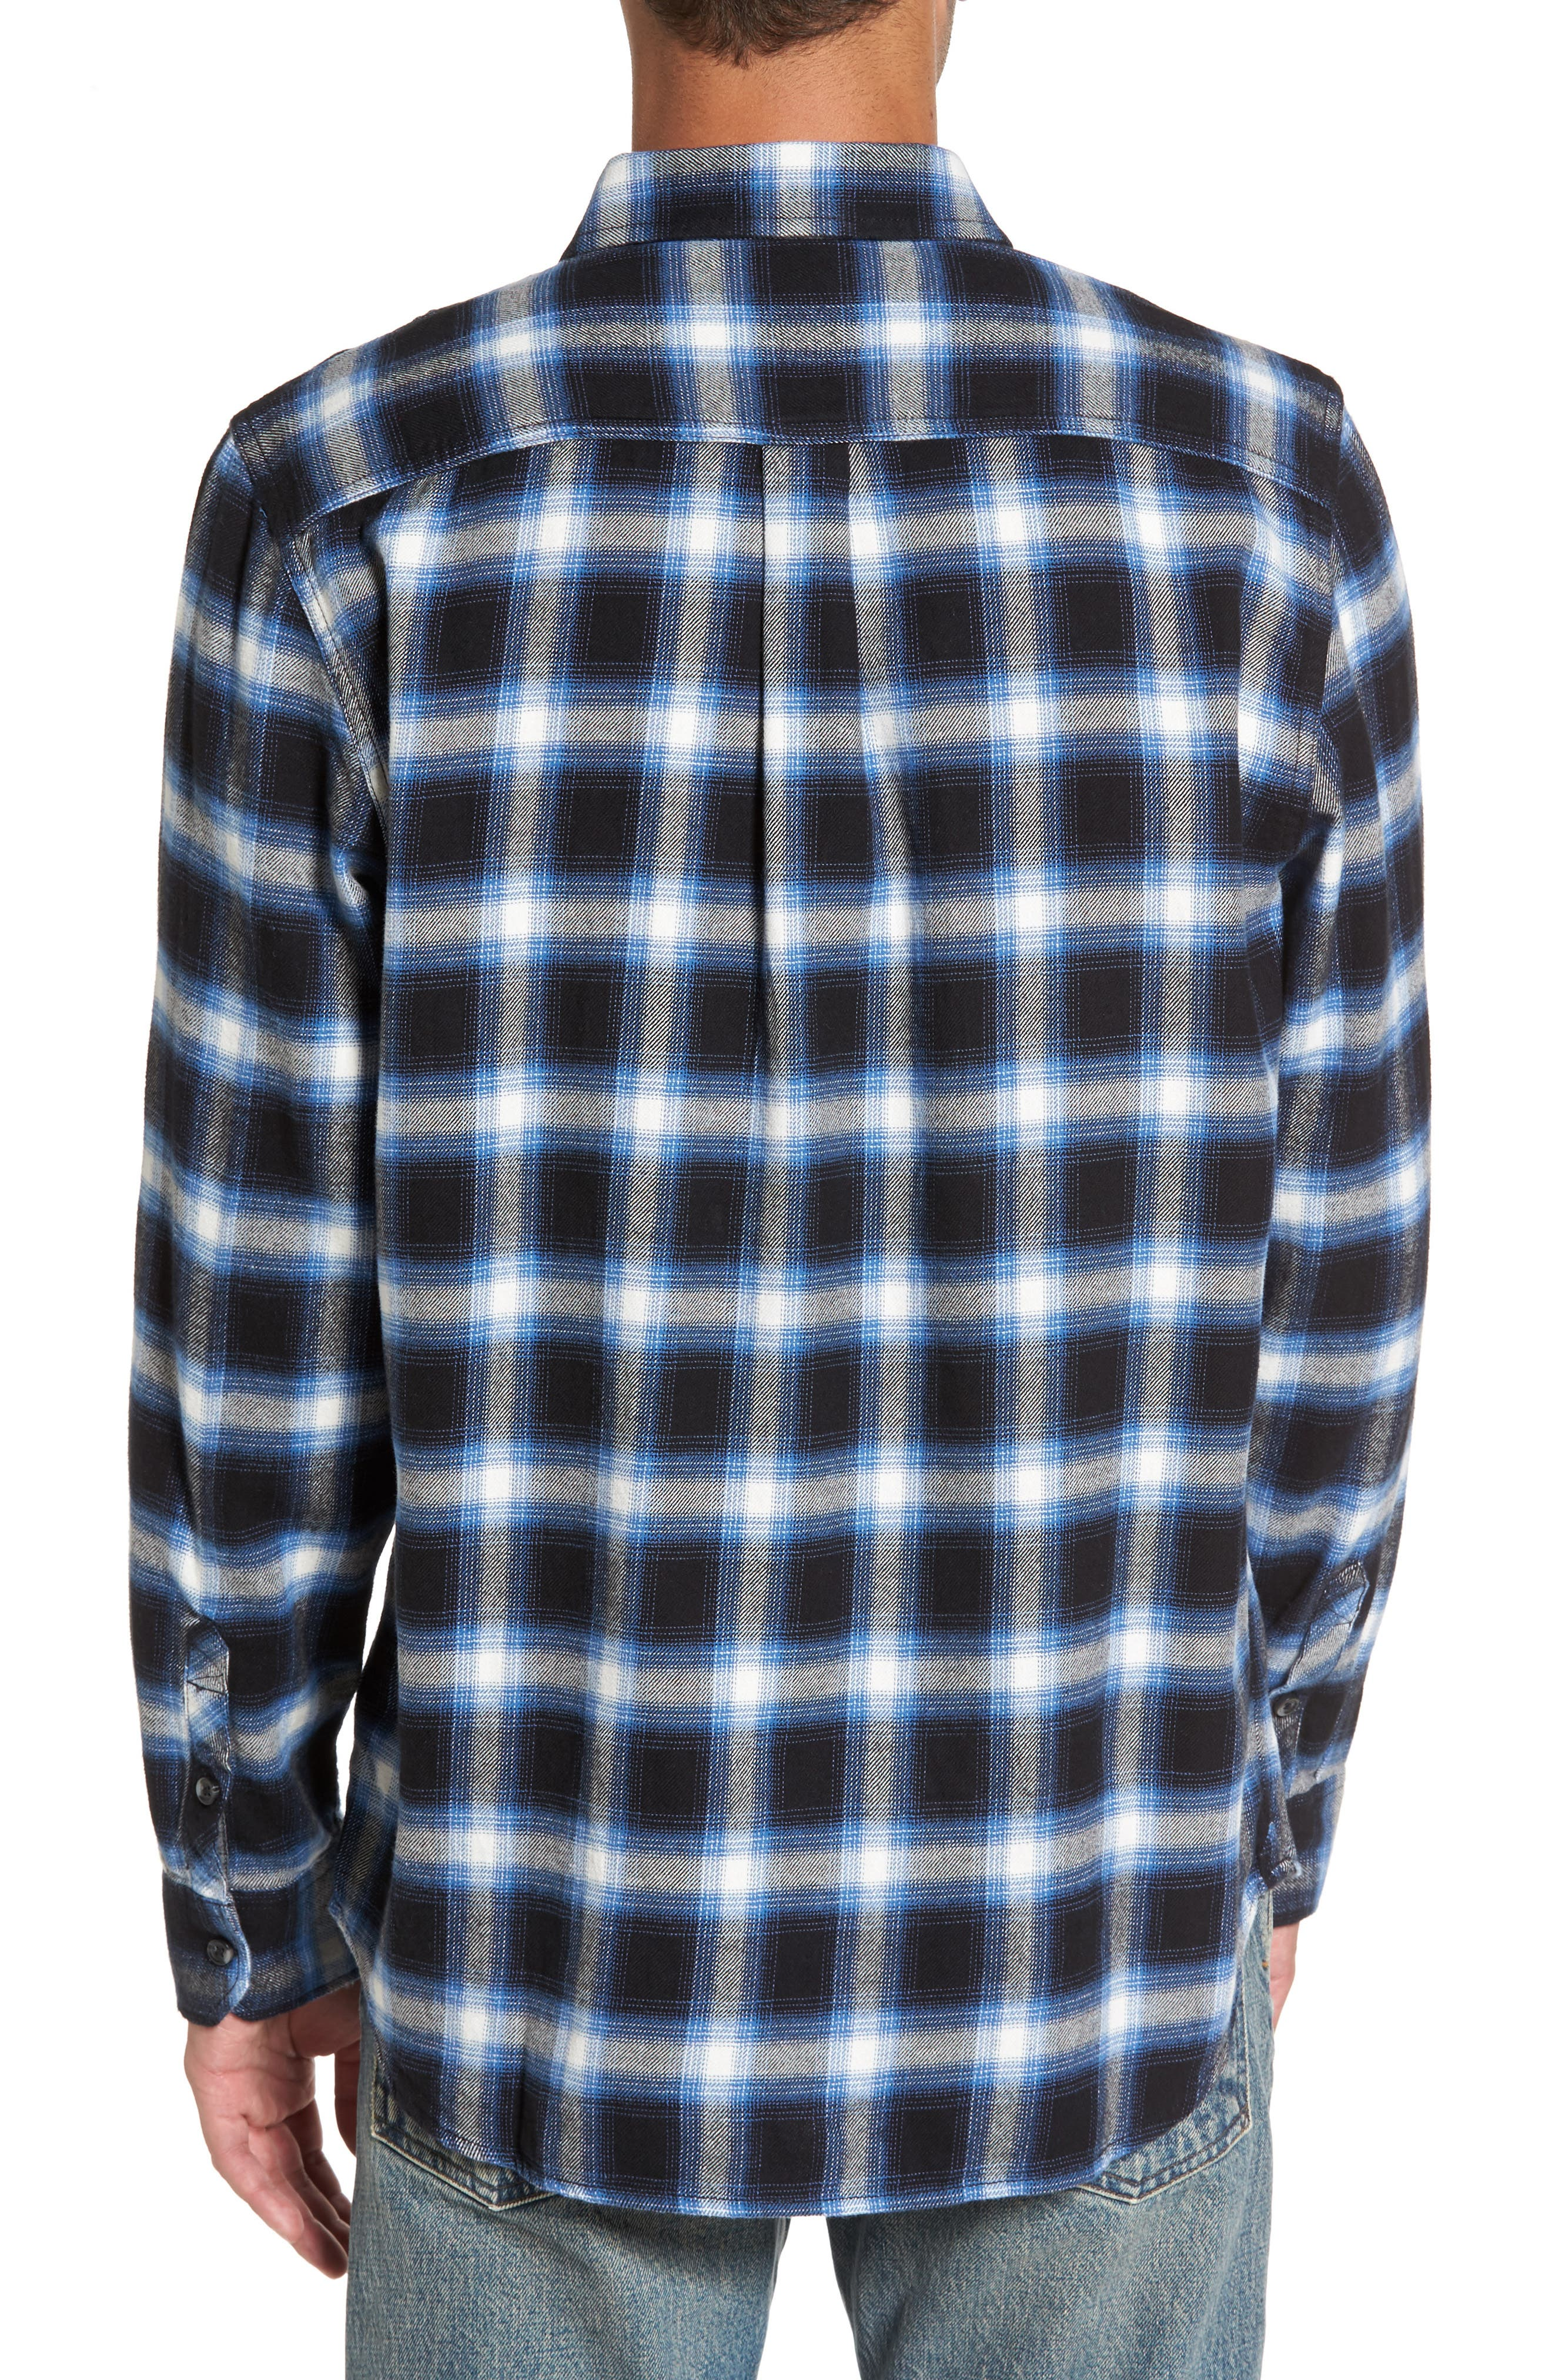 Beachwood Flannel Shirt,                             Alternate thumbnail 2, color,                             Black/ Delft